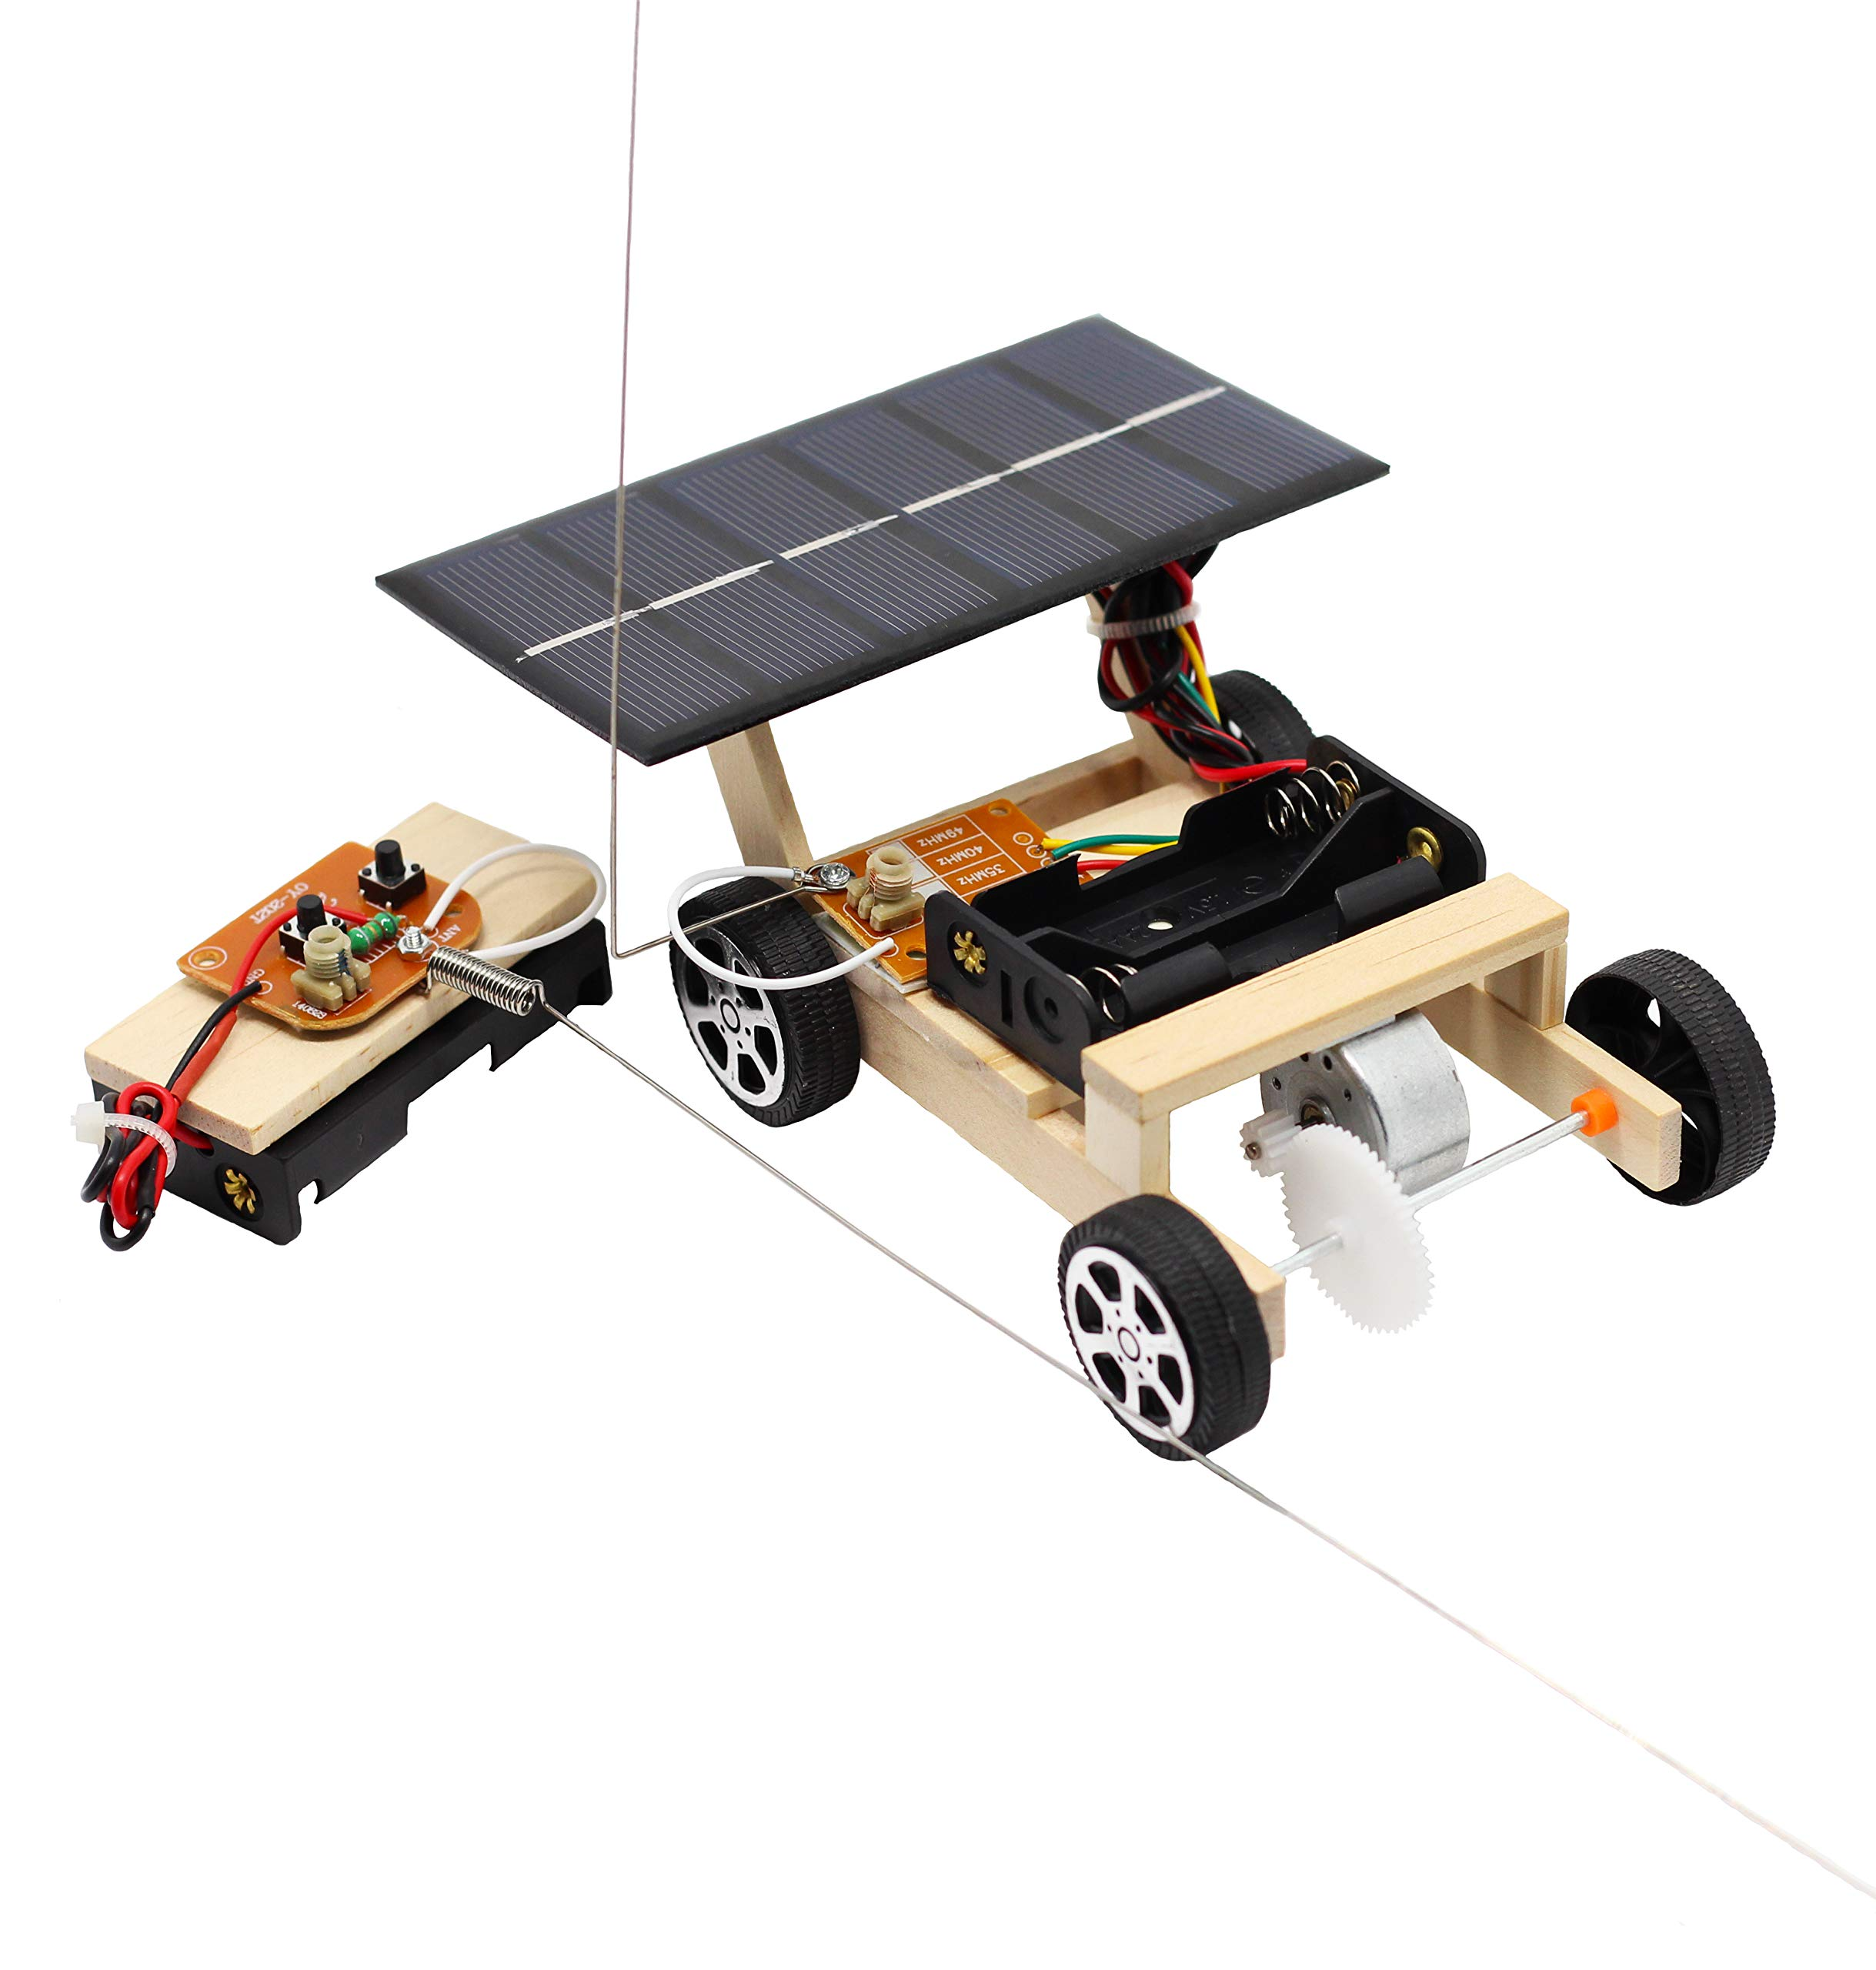 Pica Toys Wooden Solar & Wireless Remote Control Car Robotics Creative Engineering Circuit Science STEM Building Kit - Hybird Power for Electric Motor - DIY Experiment for Kids, Teens and Adults